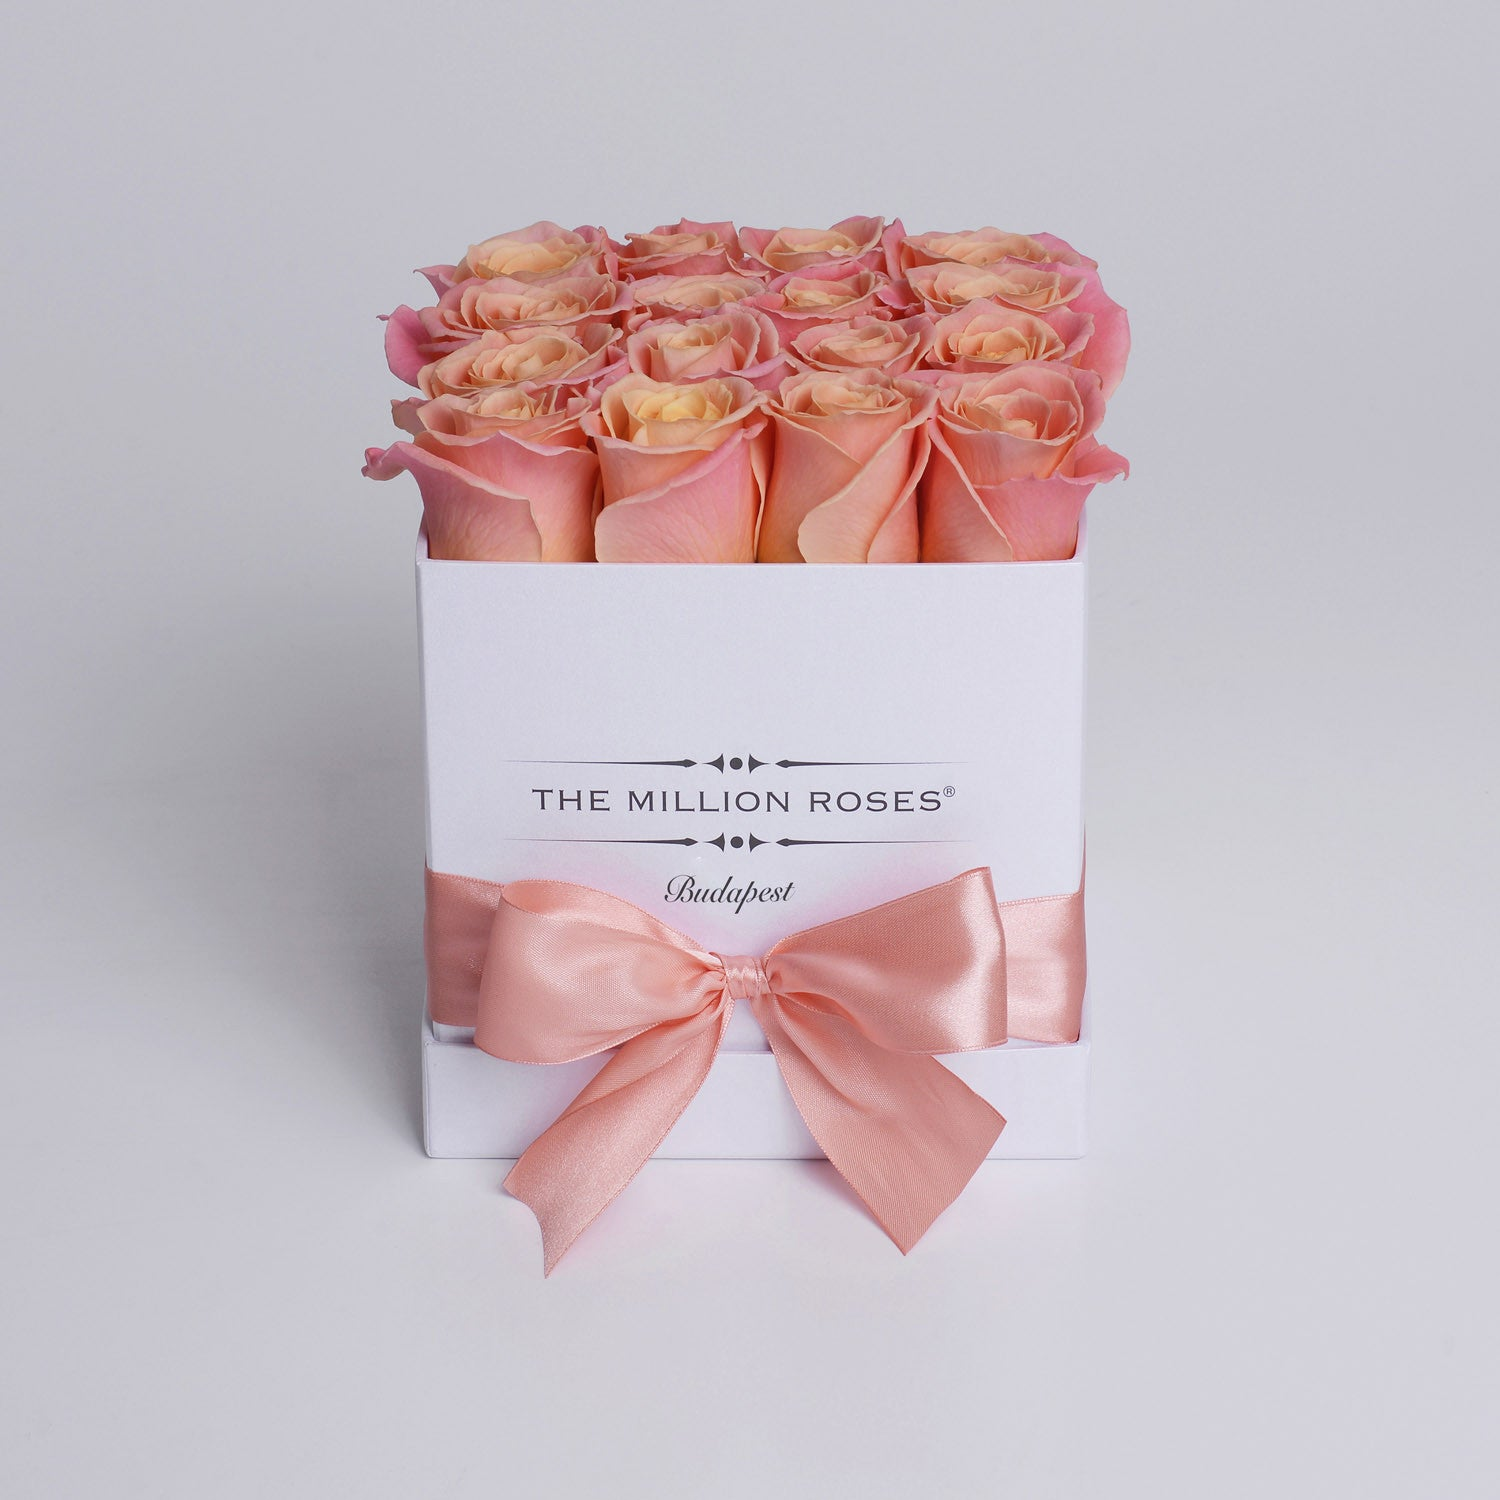 Cube - Peach Roses - White Box - The Million Roses Budapest